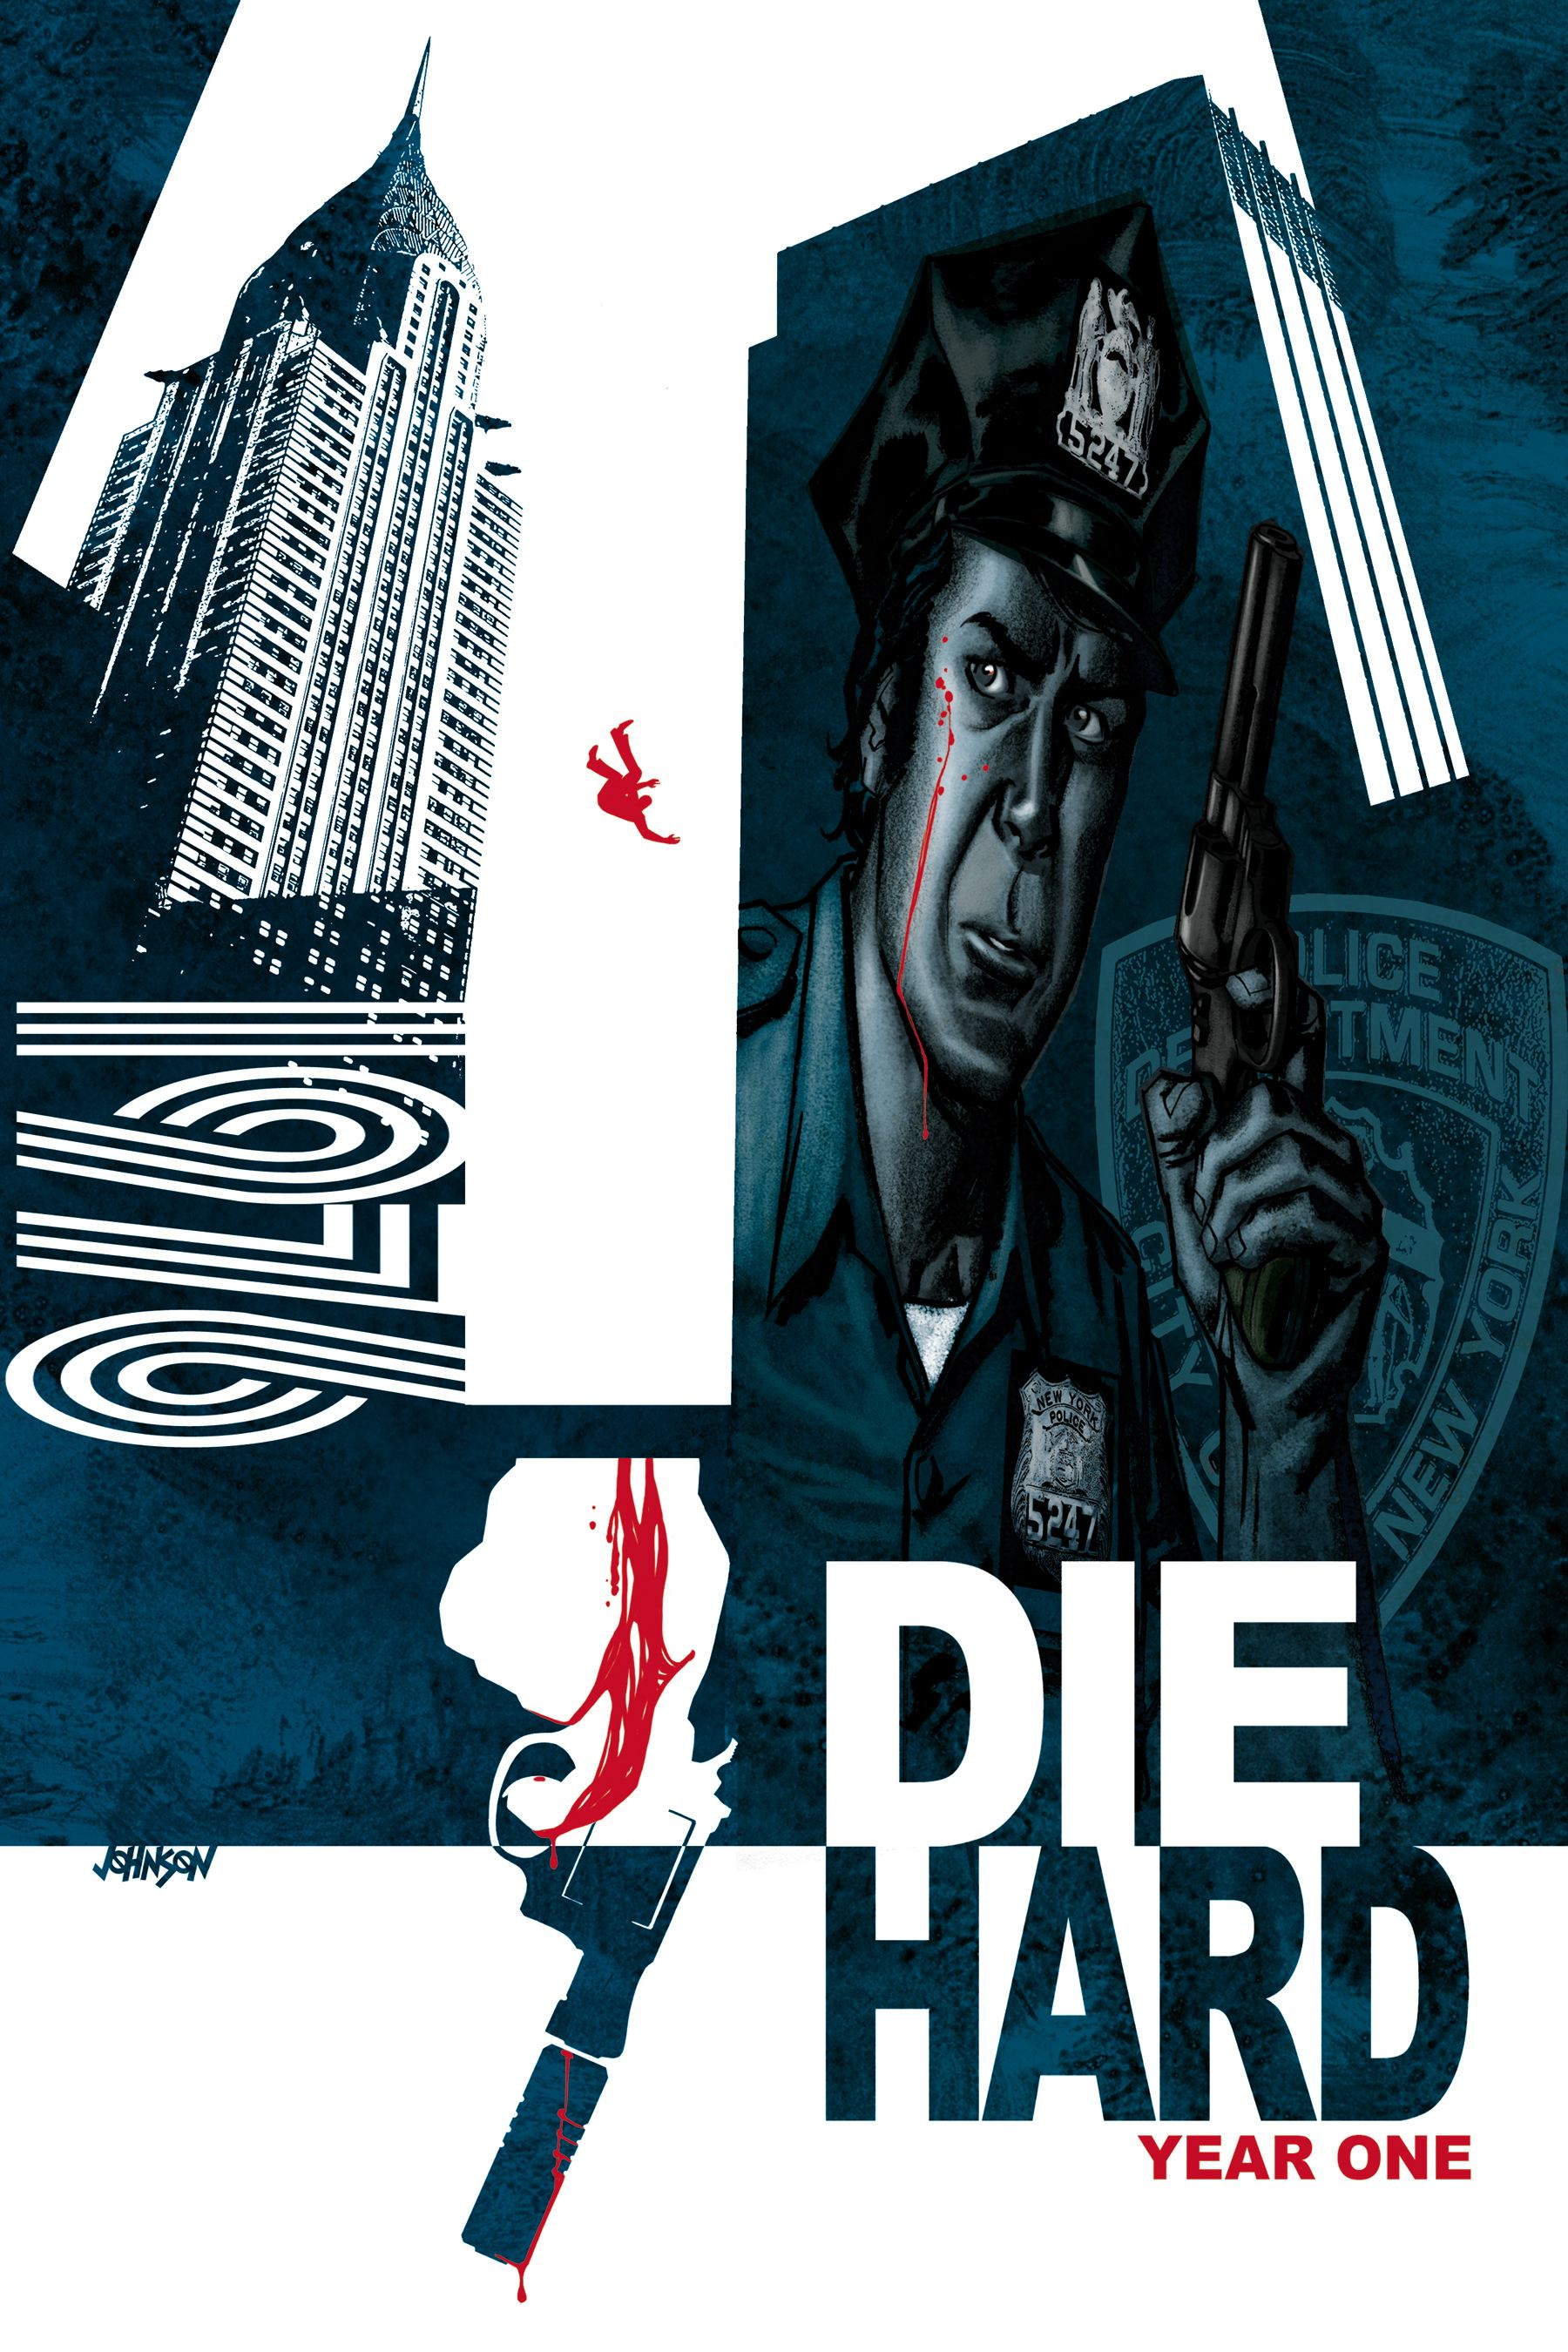 Die-hard-year-one-vol-1-9781608866236_hr